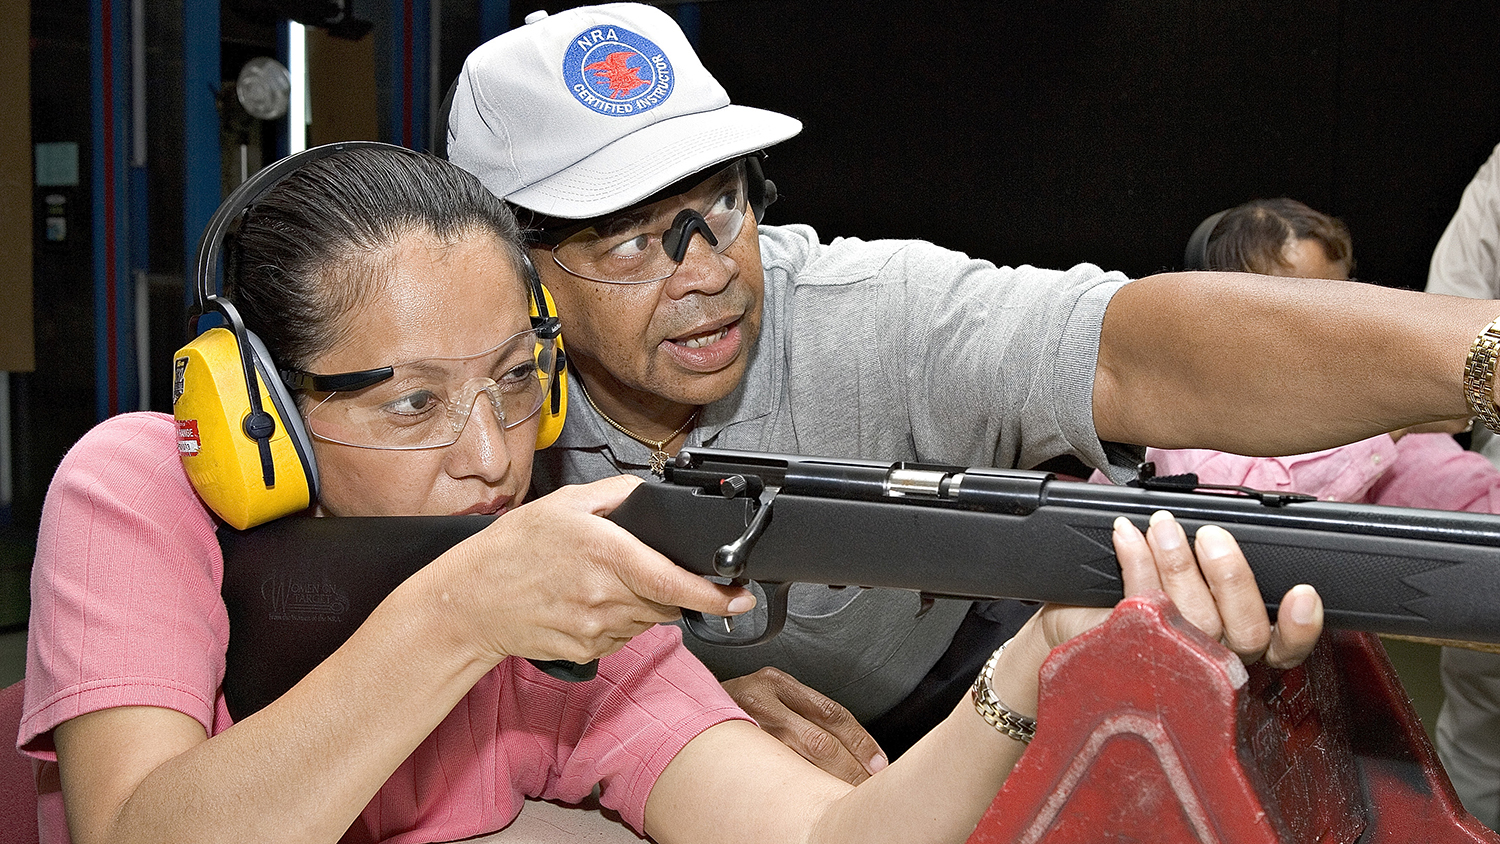 Why Should You Become an NRA Instructor?